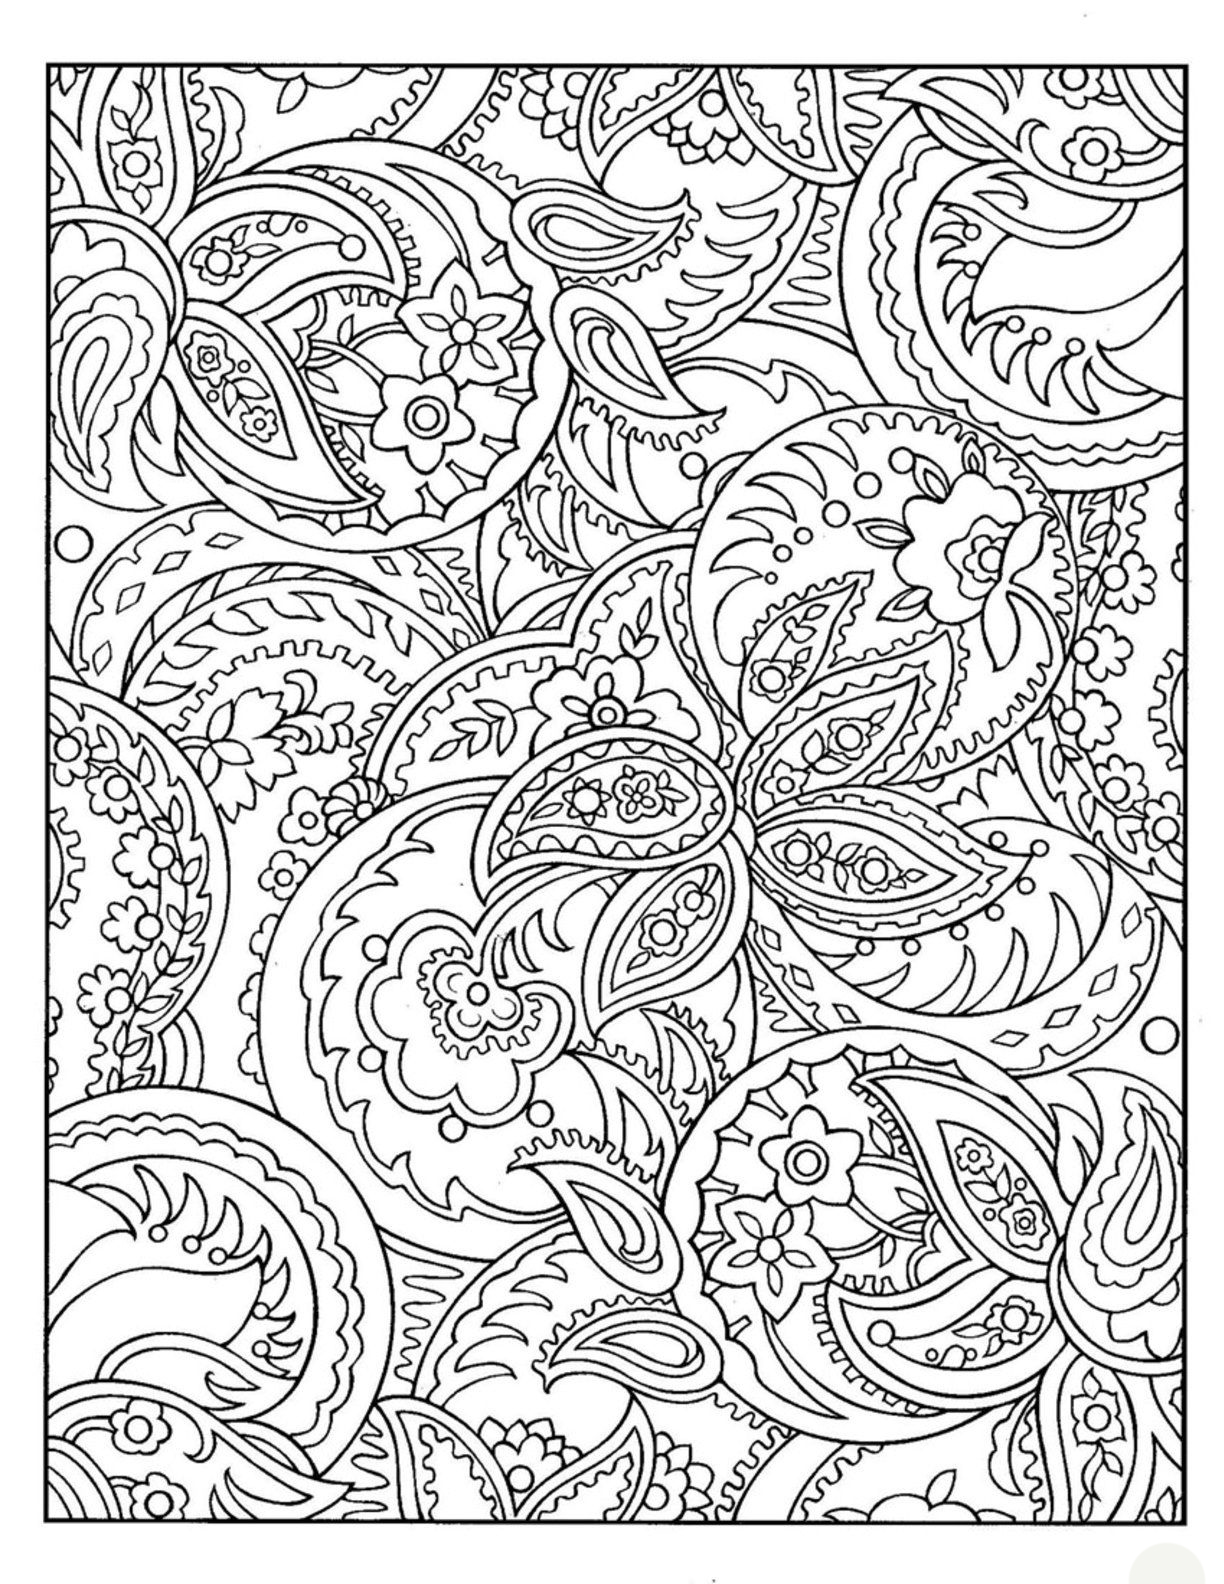 pattern coloring pages for kids enjoyable children39s coloring patterns learning printable pages coloring for kids pattern